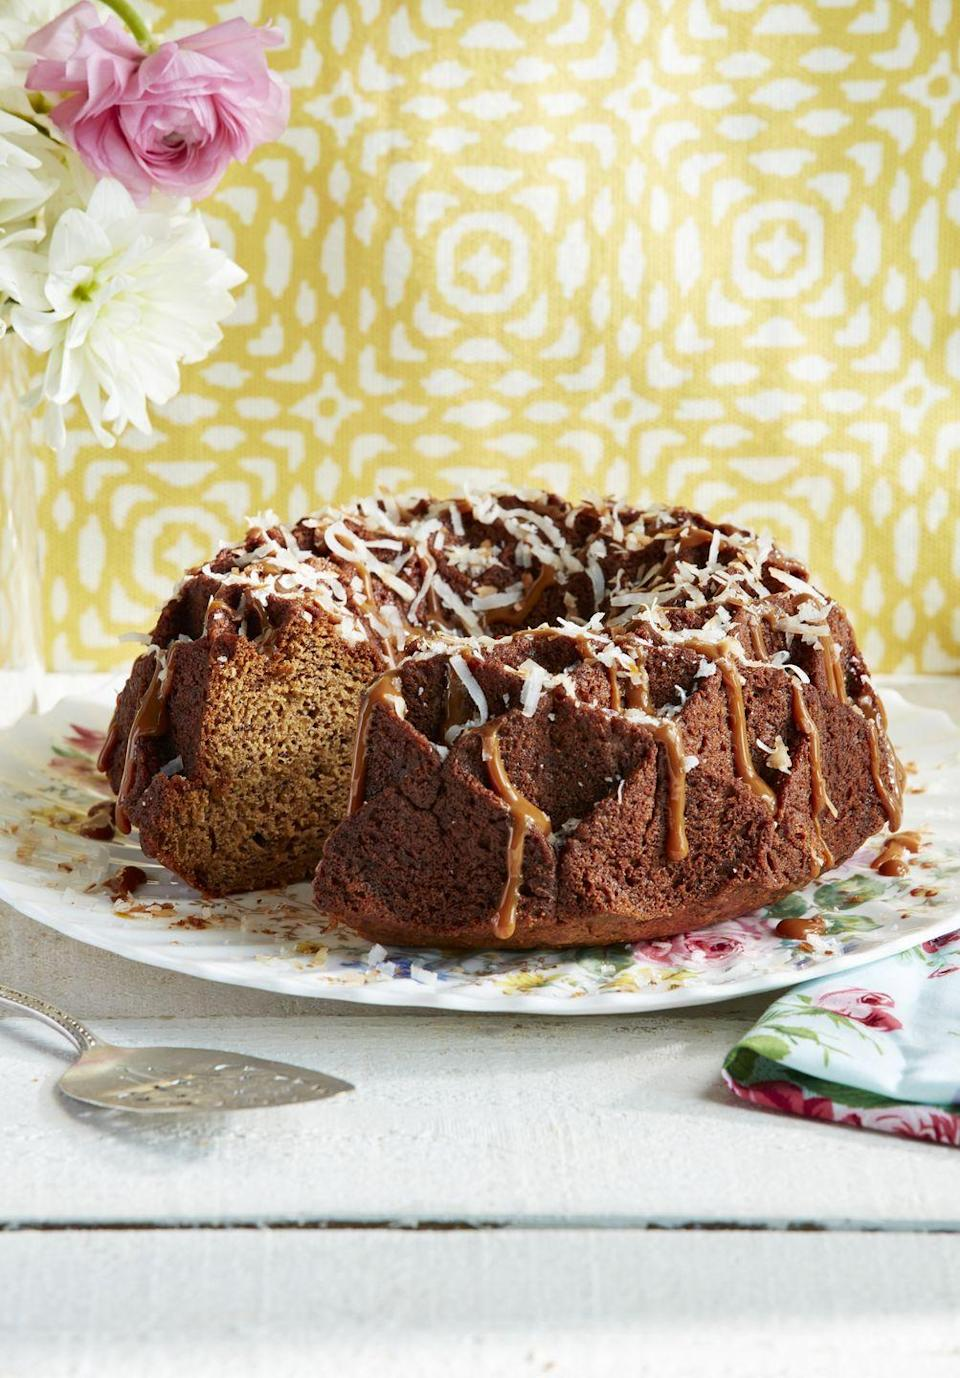 """<p>Another great reason to keep a bundt pan in your cupboard, this take on banana cakes is incredibly rich.</p><p><strong><a href=""""https://www.countryliving.com/food-drinks/a27244683/banana-butterscotch-cake-recipe/"""" rel=""""nofollow noopener"""" target=""""_blank"""" data-ylk=""""slk:Get the recipe"""" class=""""link rapid-noclick-resp"""">Get the recipe</a>.</strong></p><p><strong><a class=""""link rapid-noclick-resp"""" href=""""https://www.amazon.com/Wilton-2105-6803-Nonstick-Perfect-Non-Stick/dp/B004EBK7TK/?tag=syn-yahoo-20&ascsubtag=%5Bartid%7C10050.g.32944821%5Bsrc%7Cyahoo-us"""" rel=""""nofollow noopener"""" target=""""_blank"""" data-ylk=""""slk:SHOP BUNDT PANS"""">SHOP BUNDT PANS</a><br></strong></p>"""